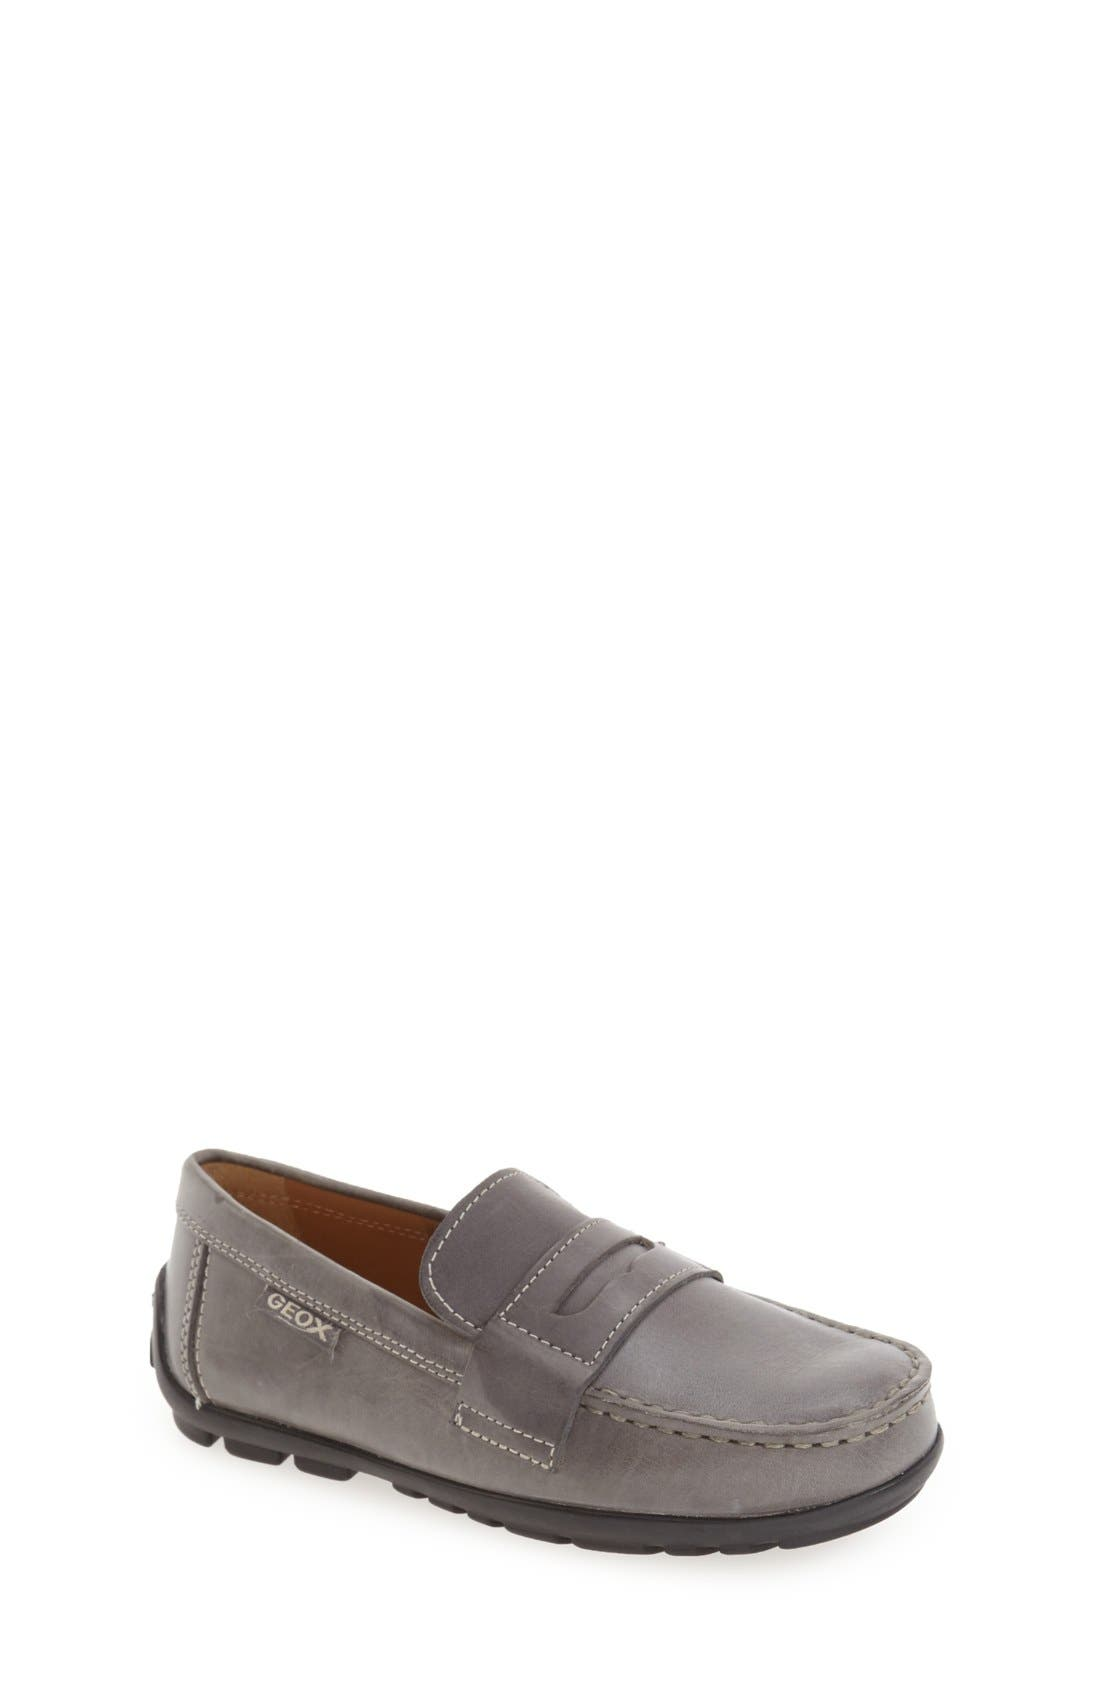 'Fast' Penny Loafer,                         Main,                         color, 020